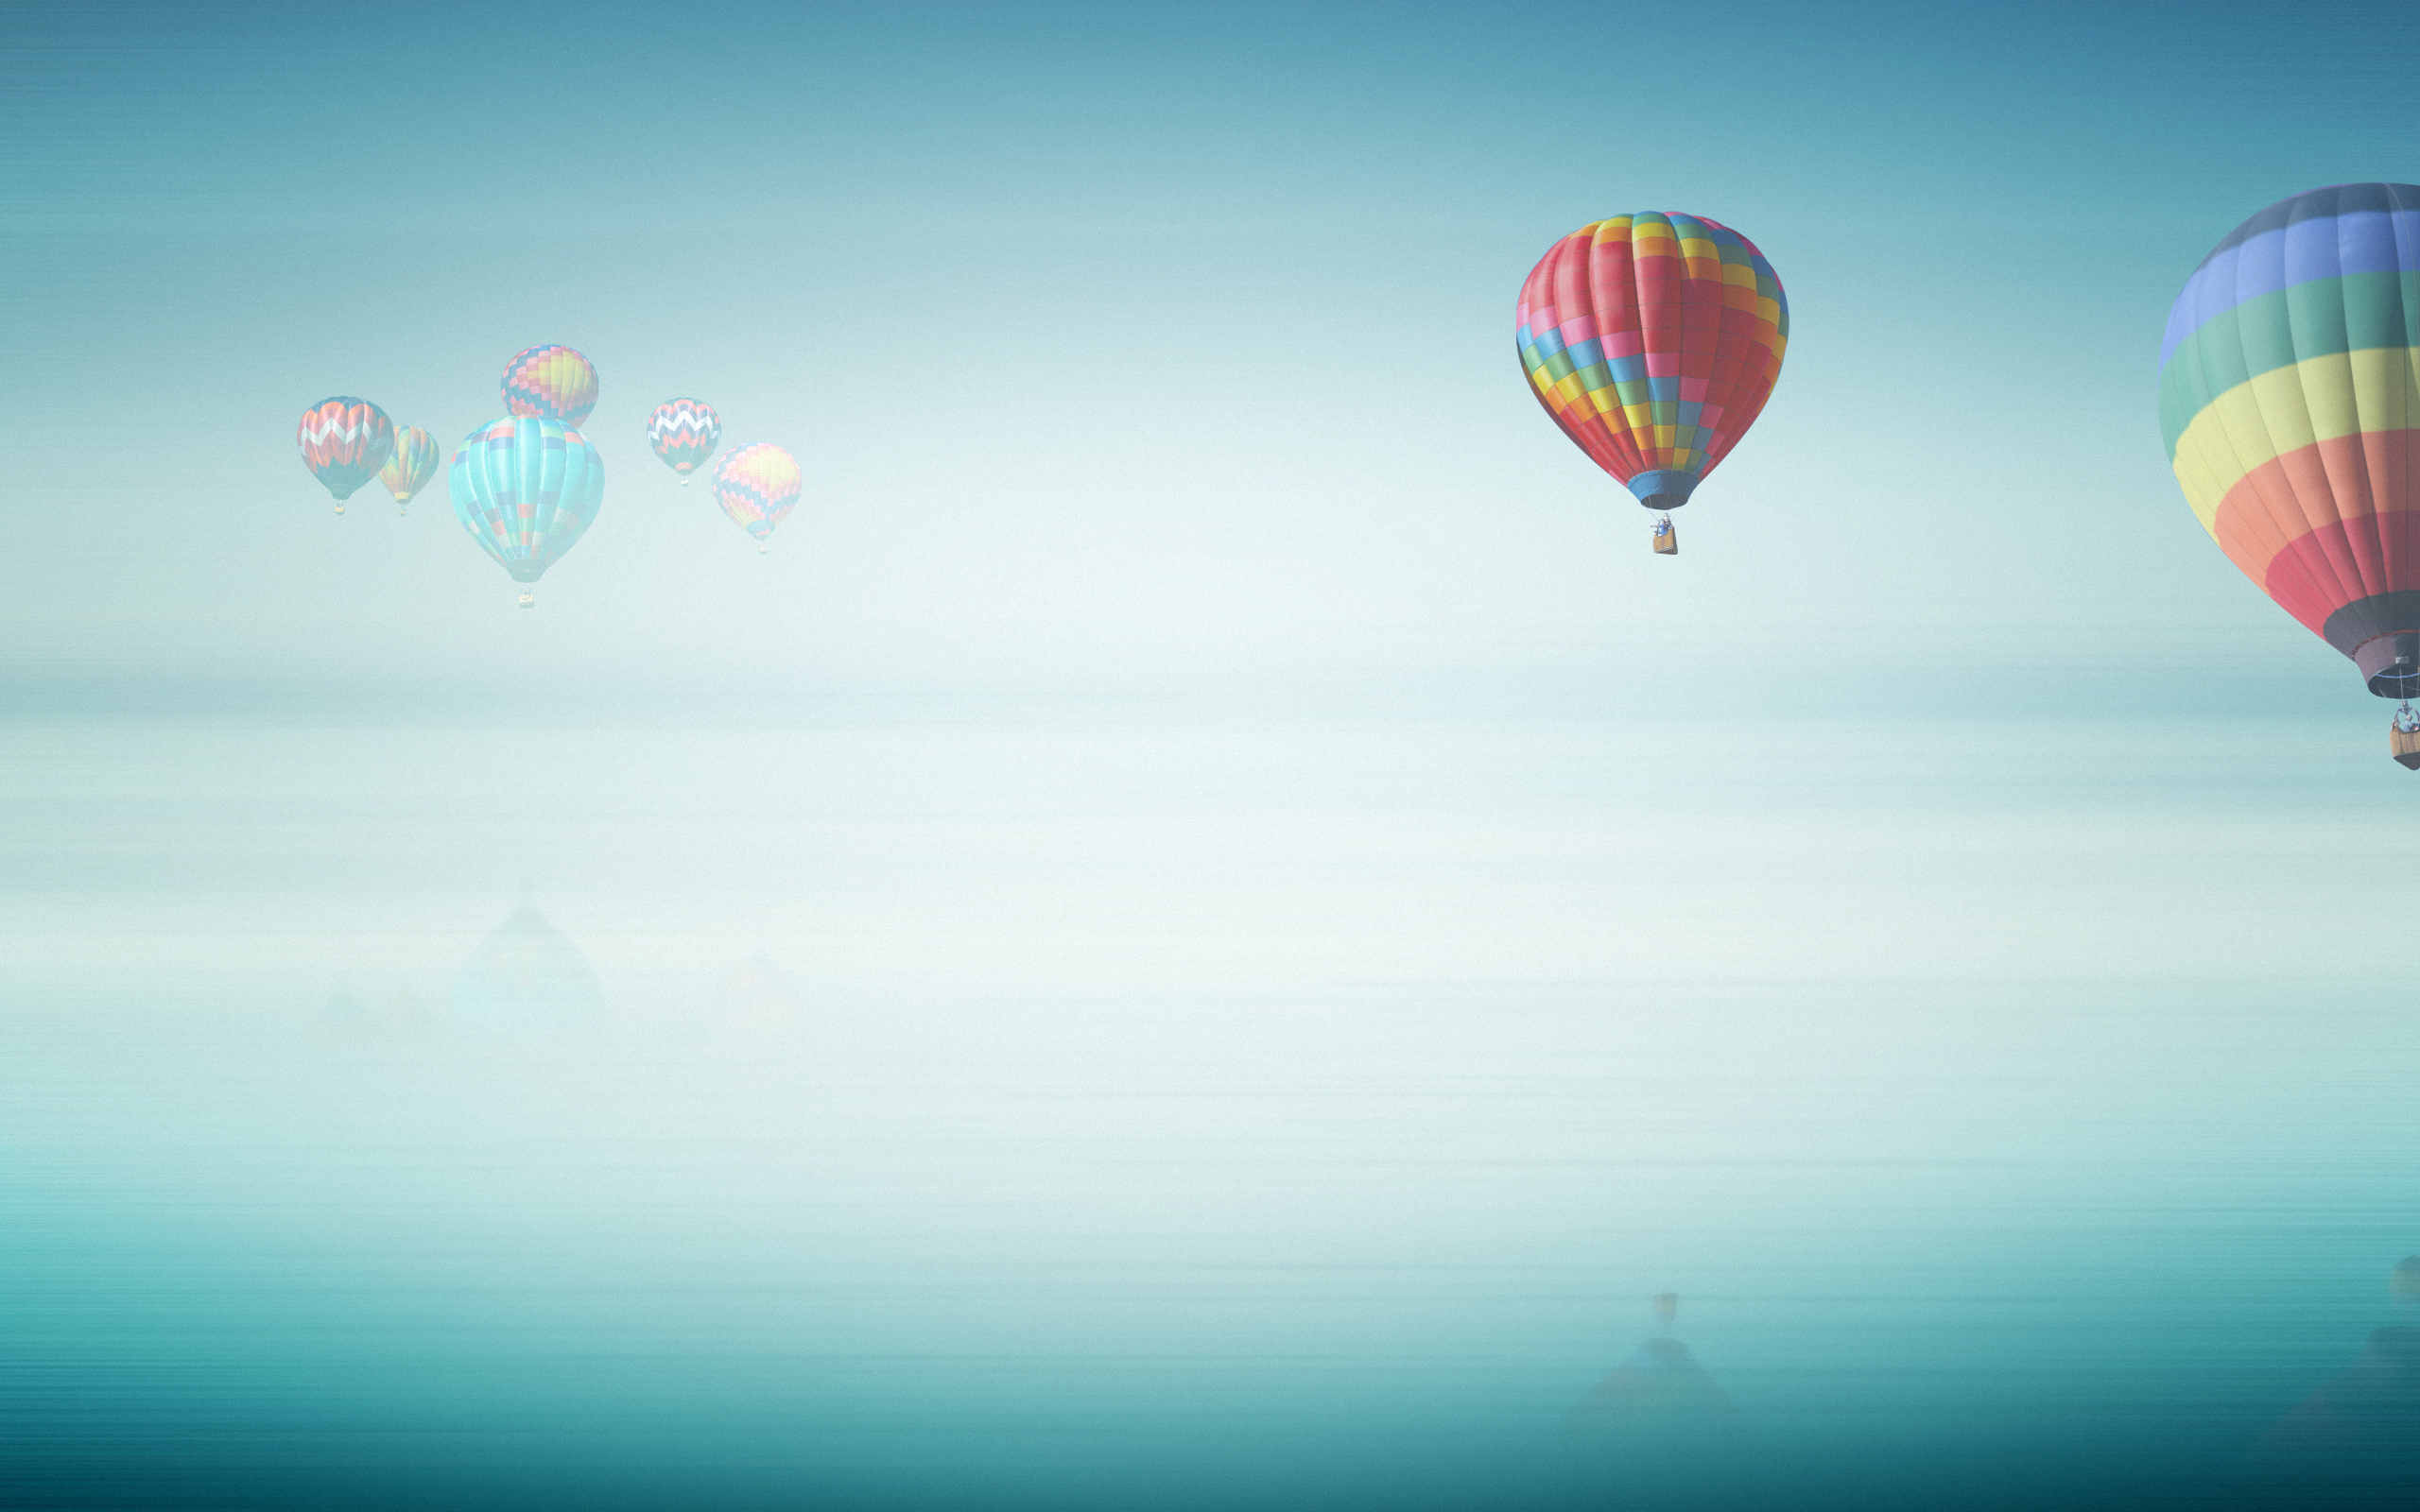 balloons background wallpaper - photo #31